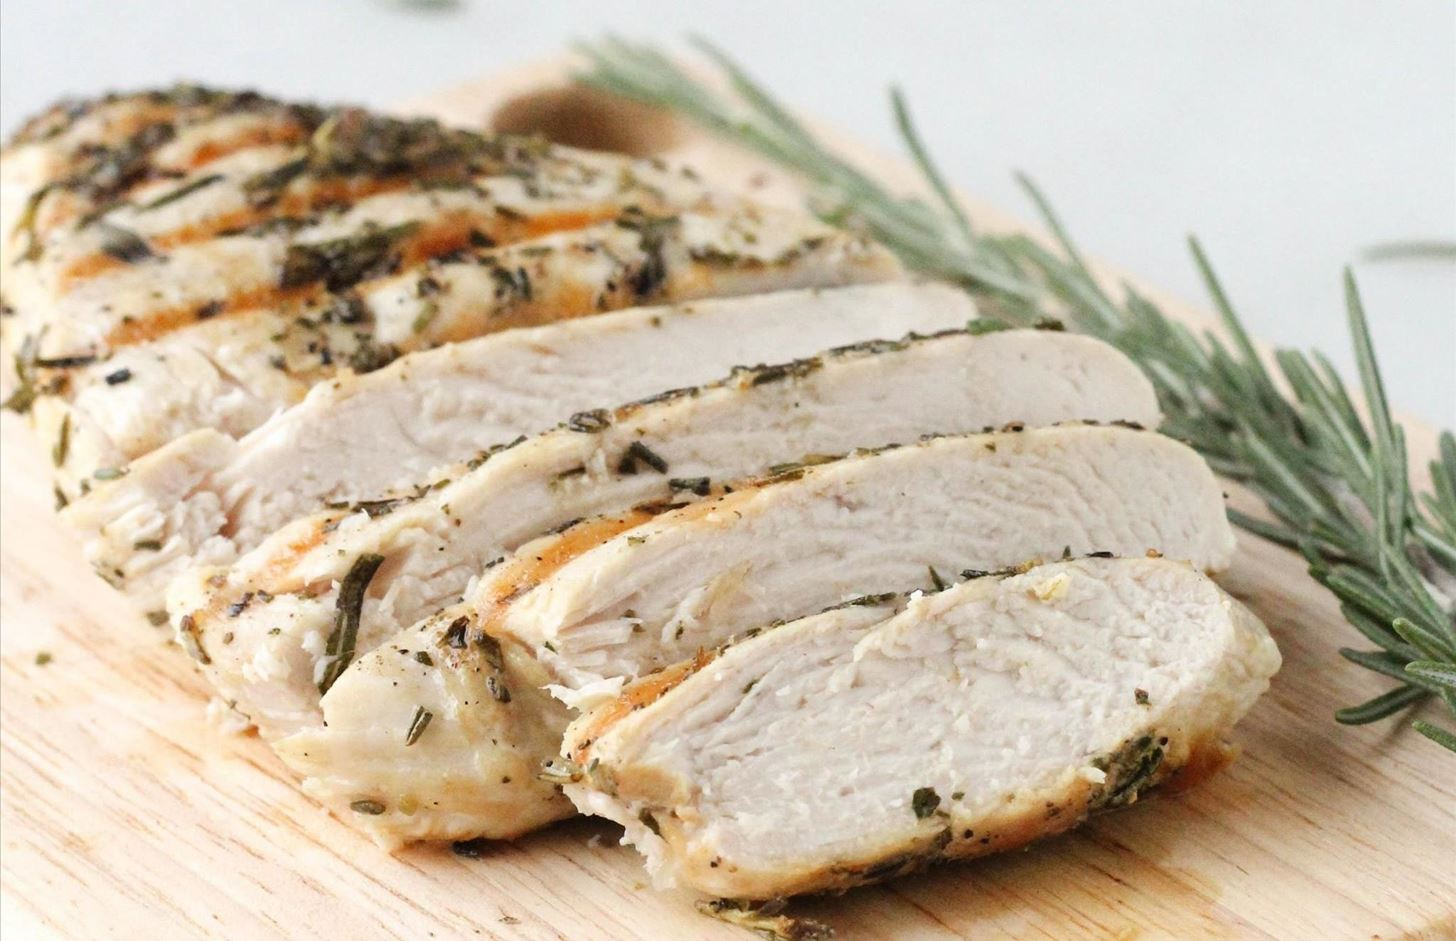 Do This Before Freezing Chicken, Turkey, & Other Poultry for Insanely Juicy Meat